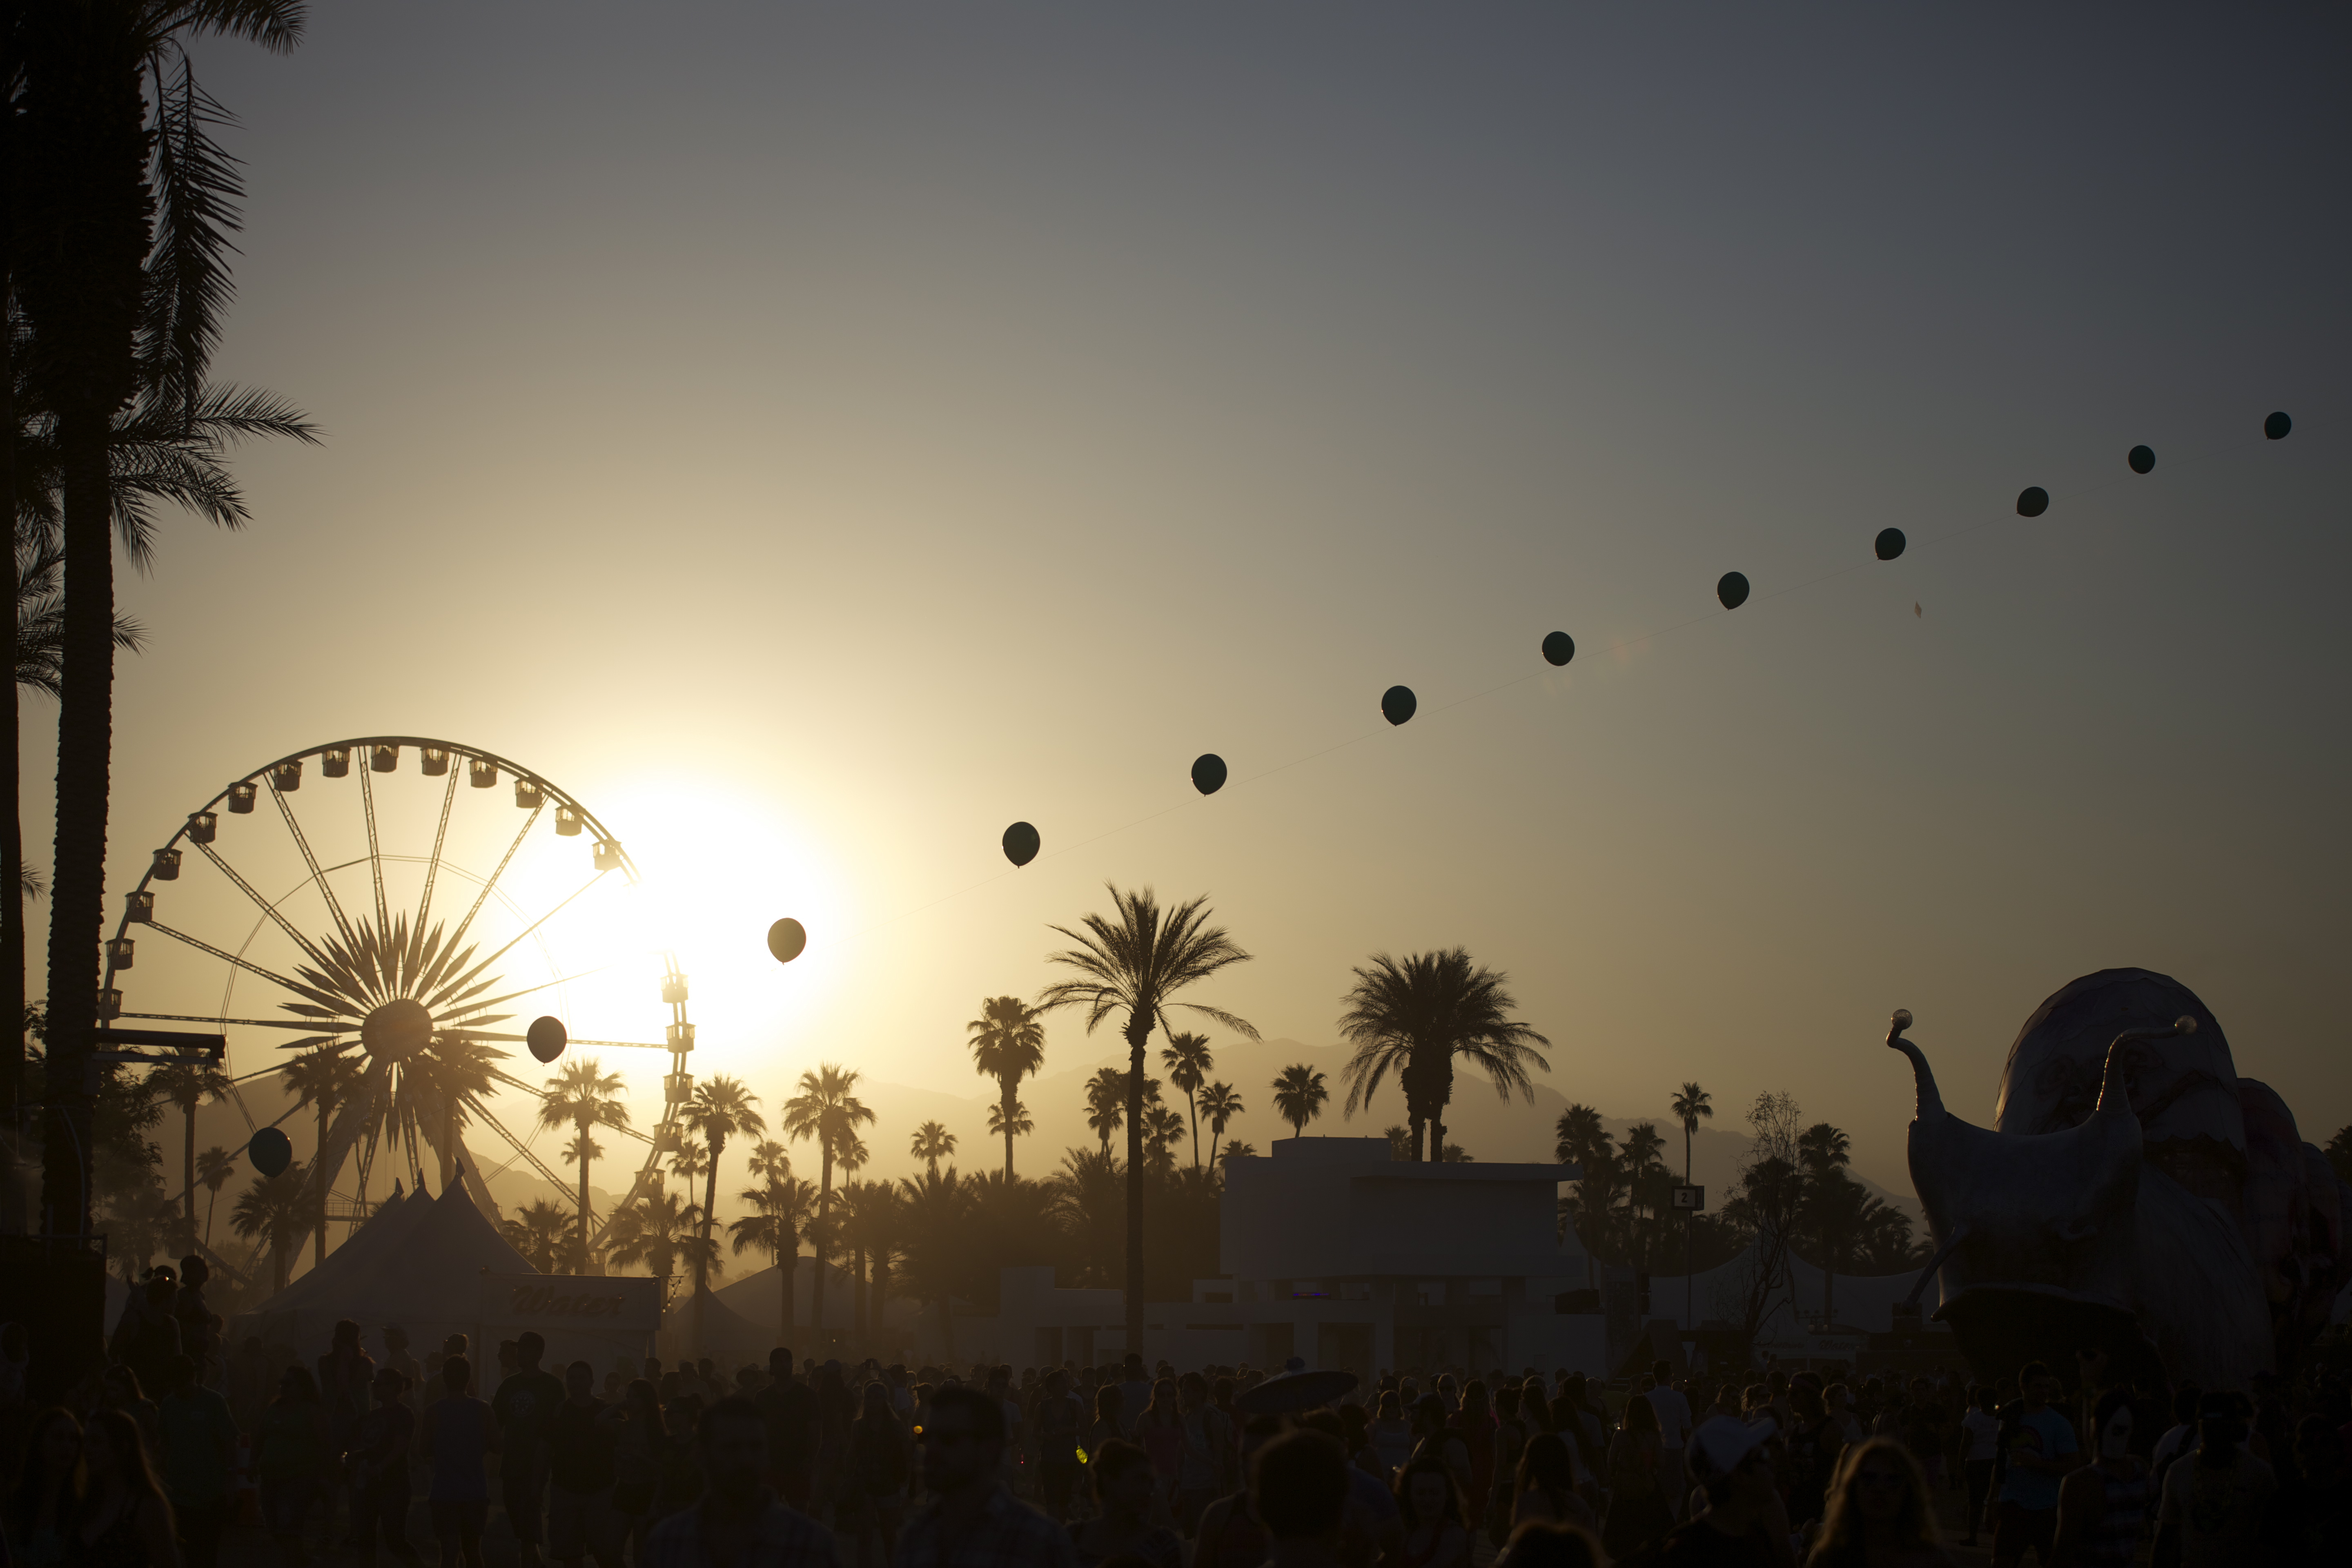 Client Goldenvoice Aeg Live Gary Nuell And Nuell Entertainment Worked With Goldenvoice And Aeg Live On The Coachella Arts And Music Festival For Over A Decade This Includes The Stagecoach Country Music Festival Which Was Created In 2007 Nuell